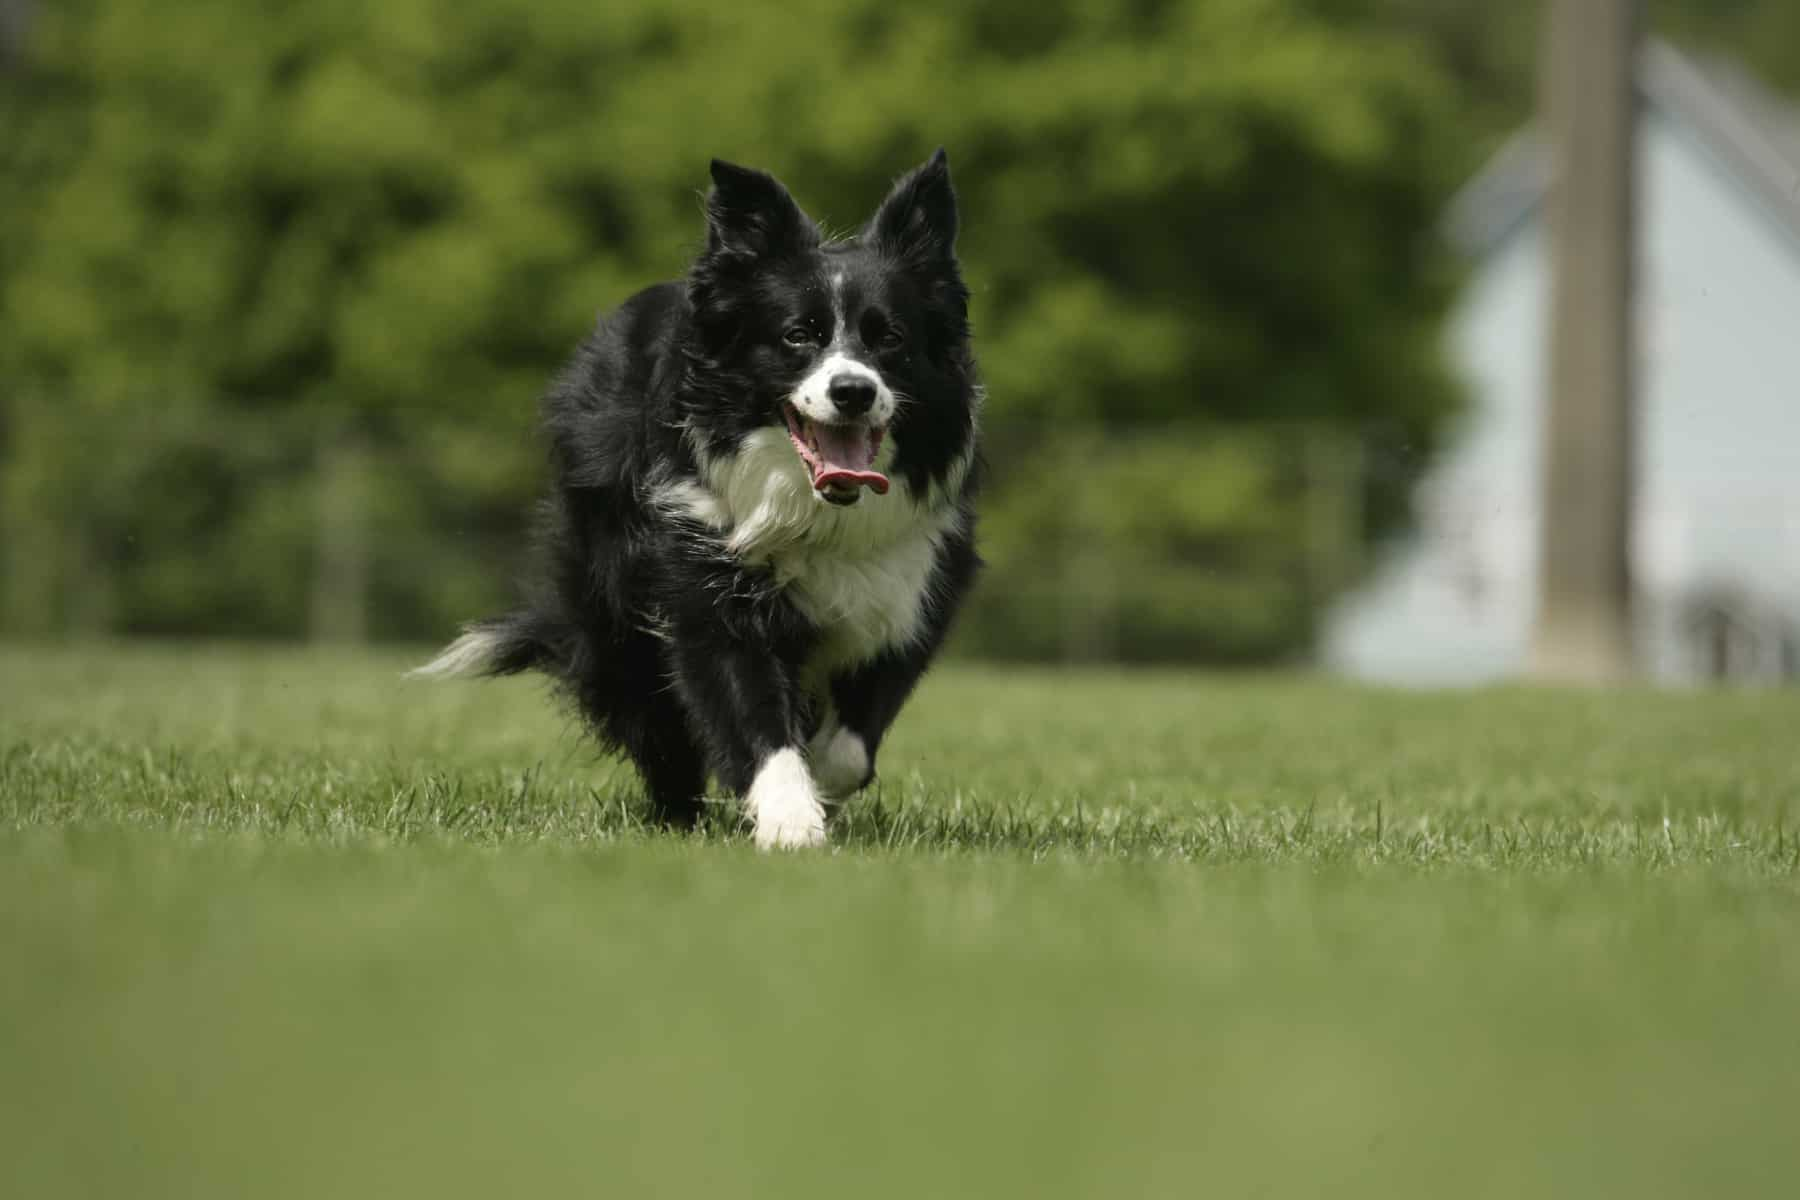 miniature Border Collie running